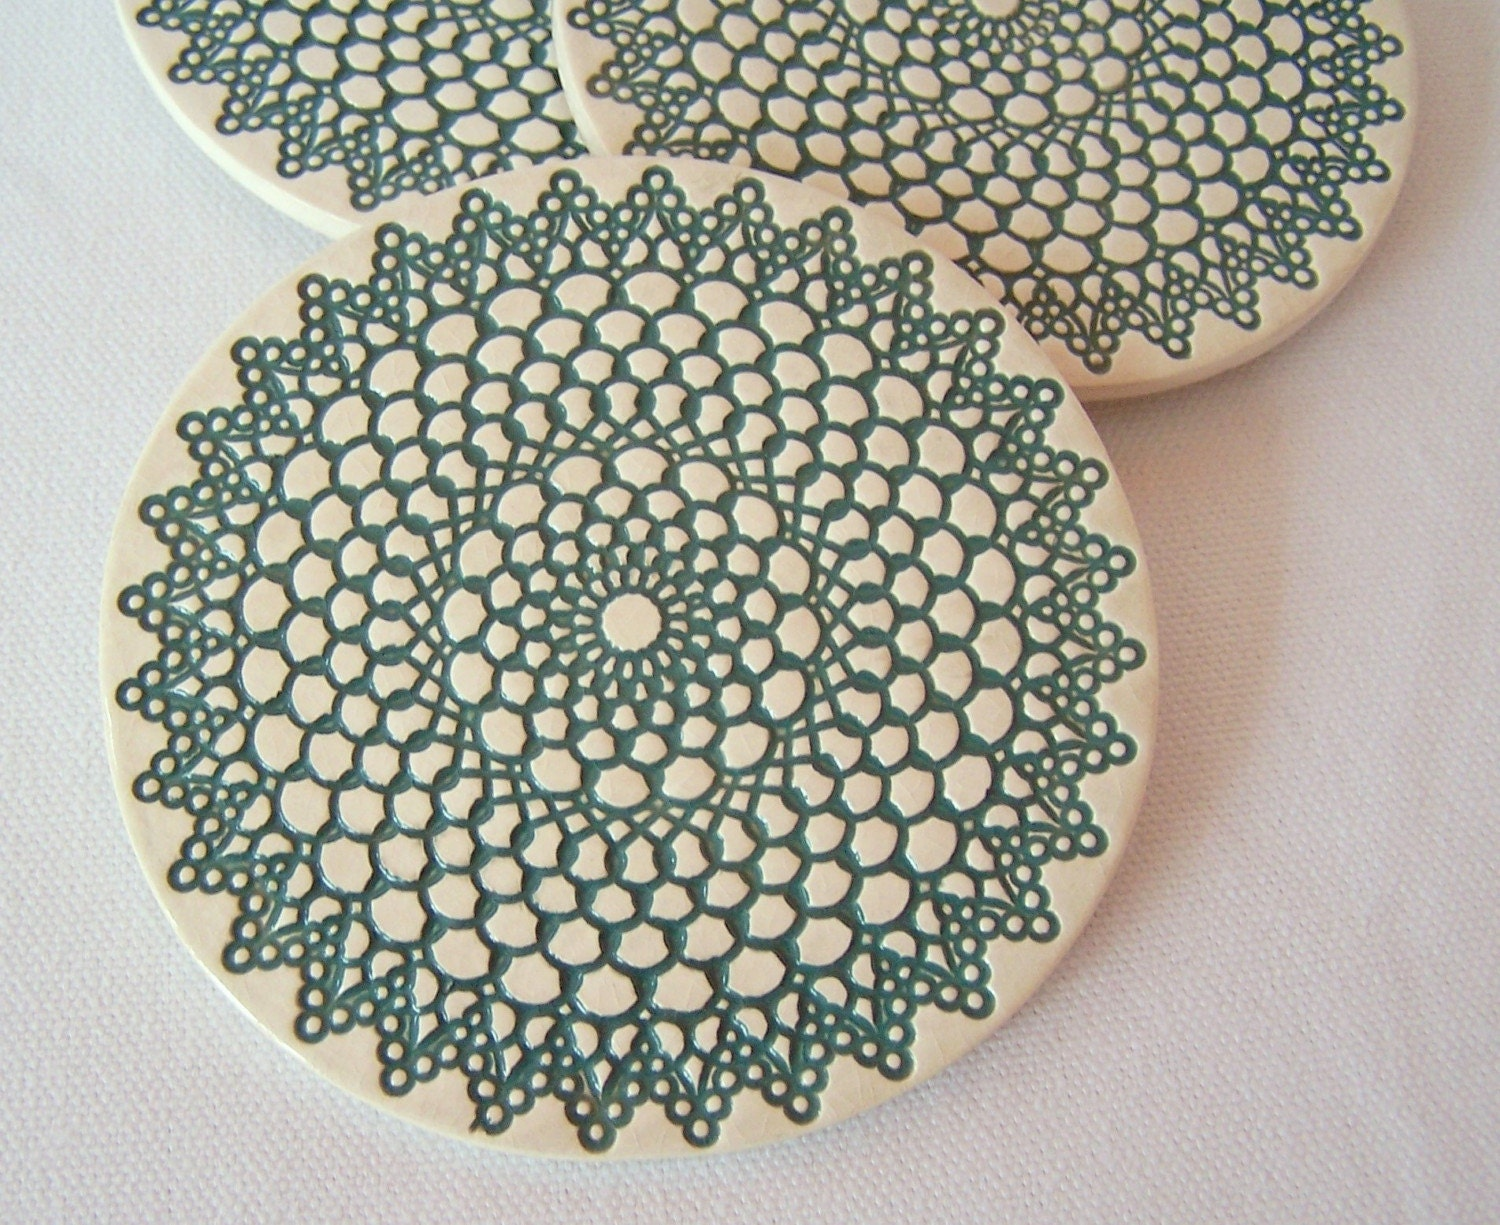 Retro Style Porcelain Coasters, set of four